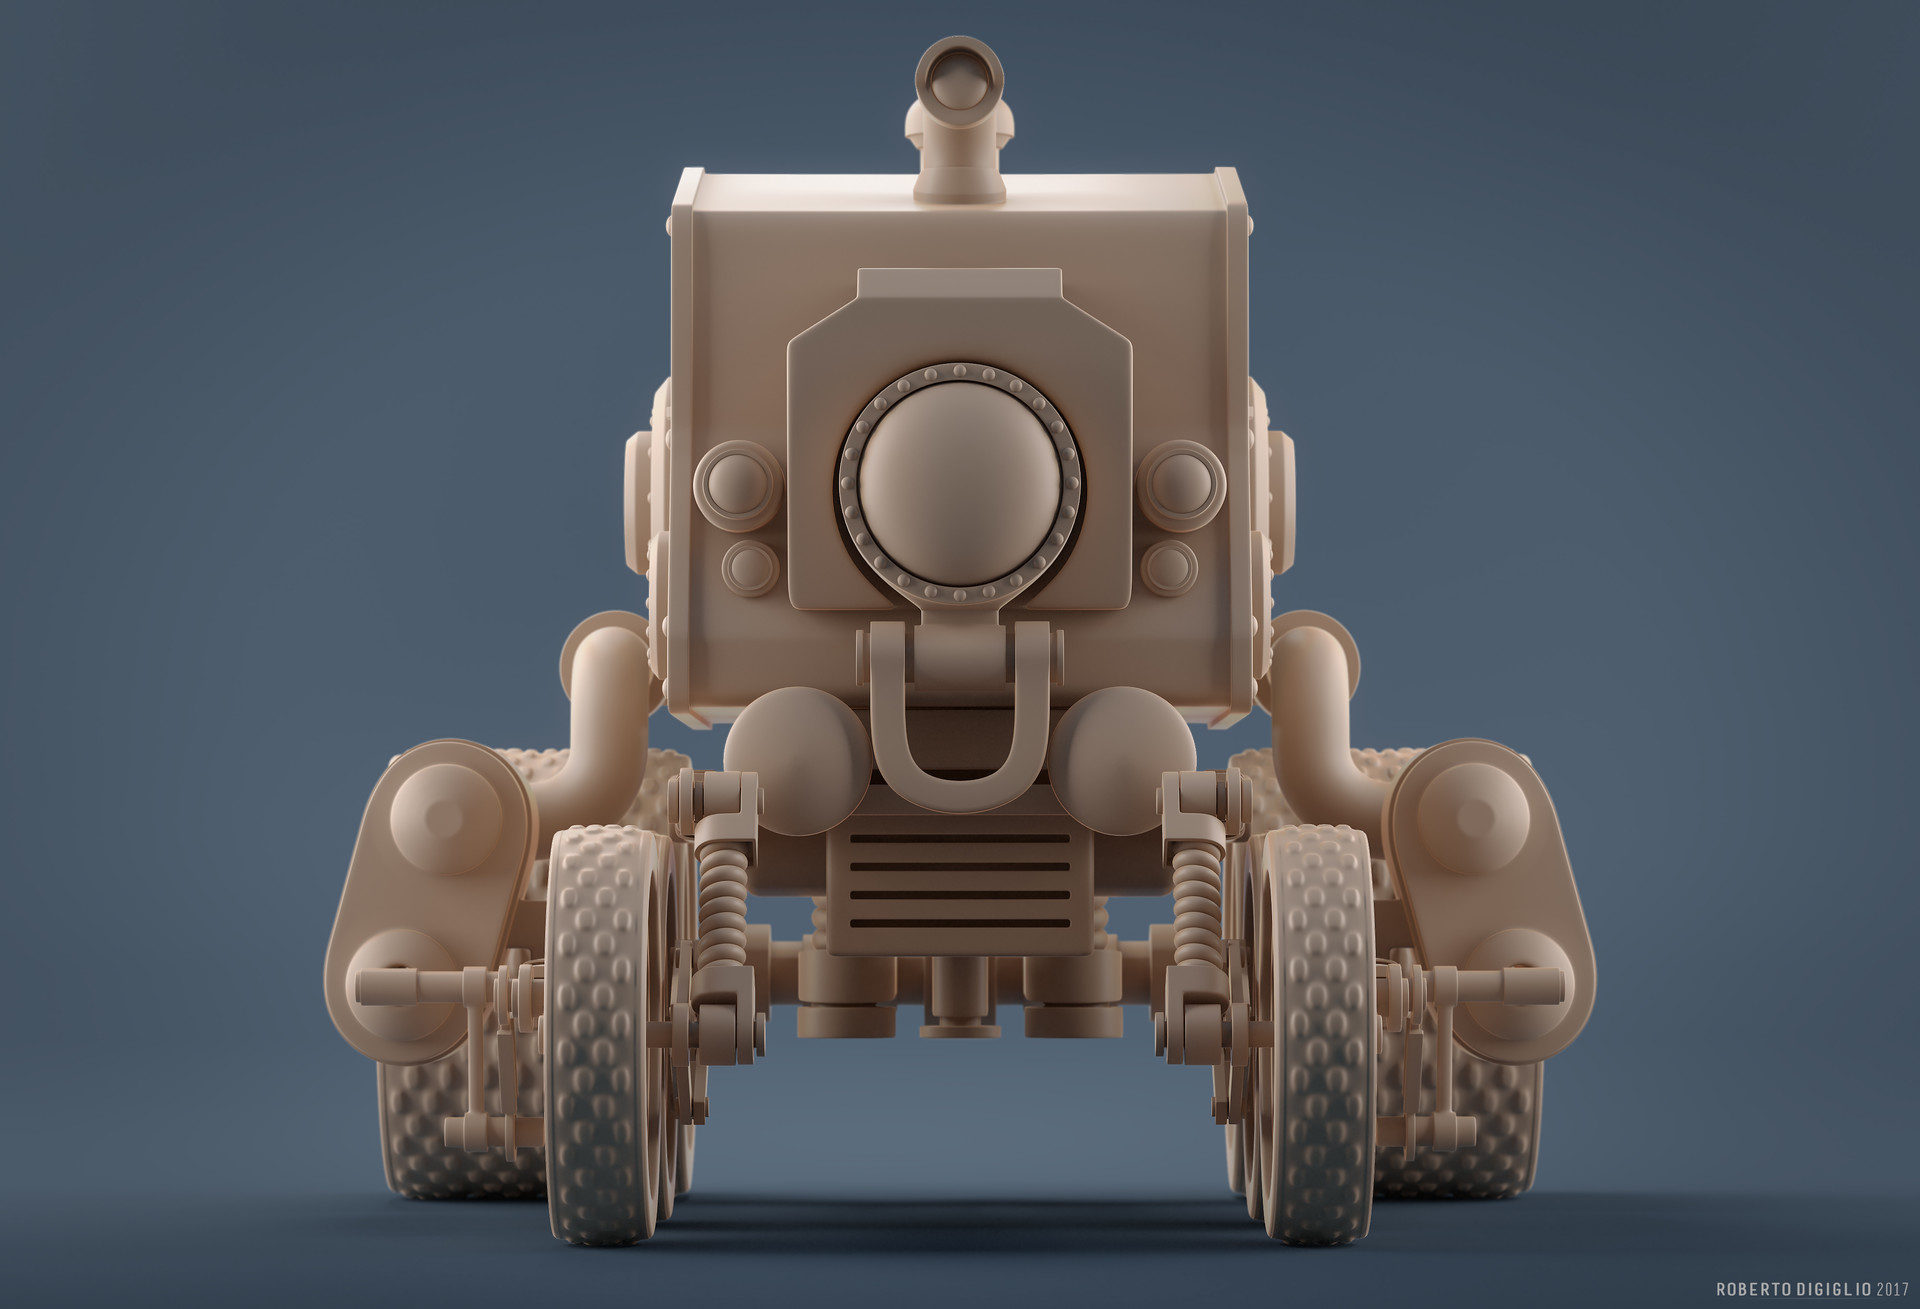 Roberto digiglio steampunkvehicleclay3hd